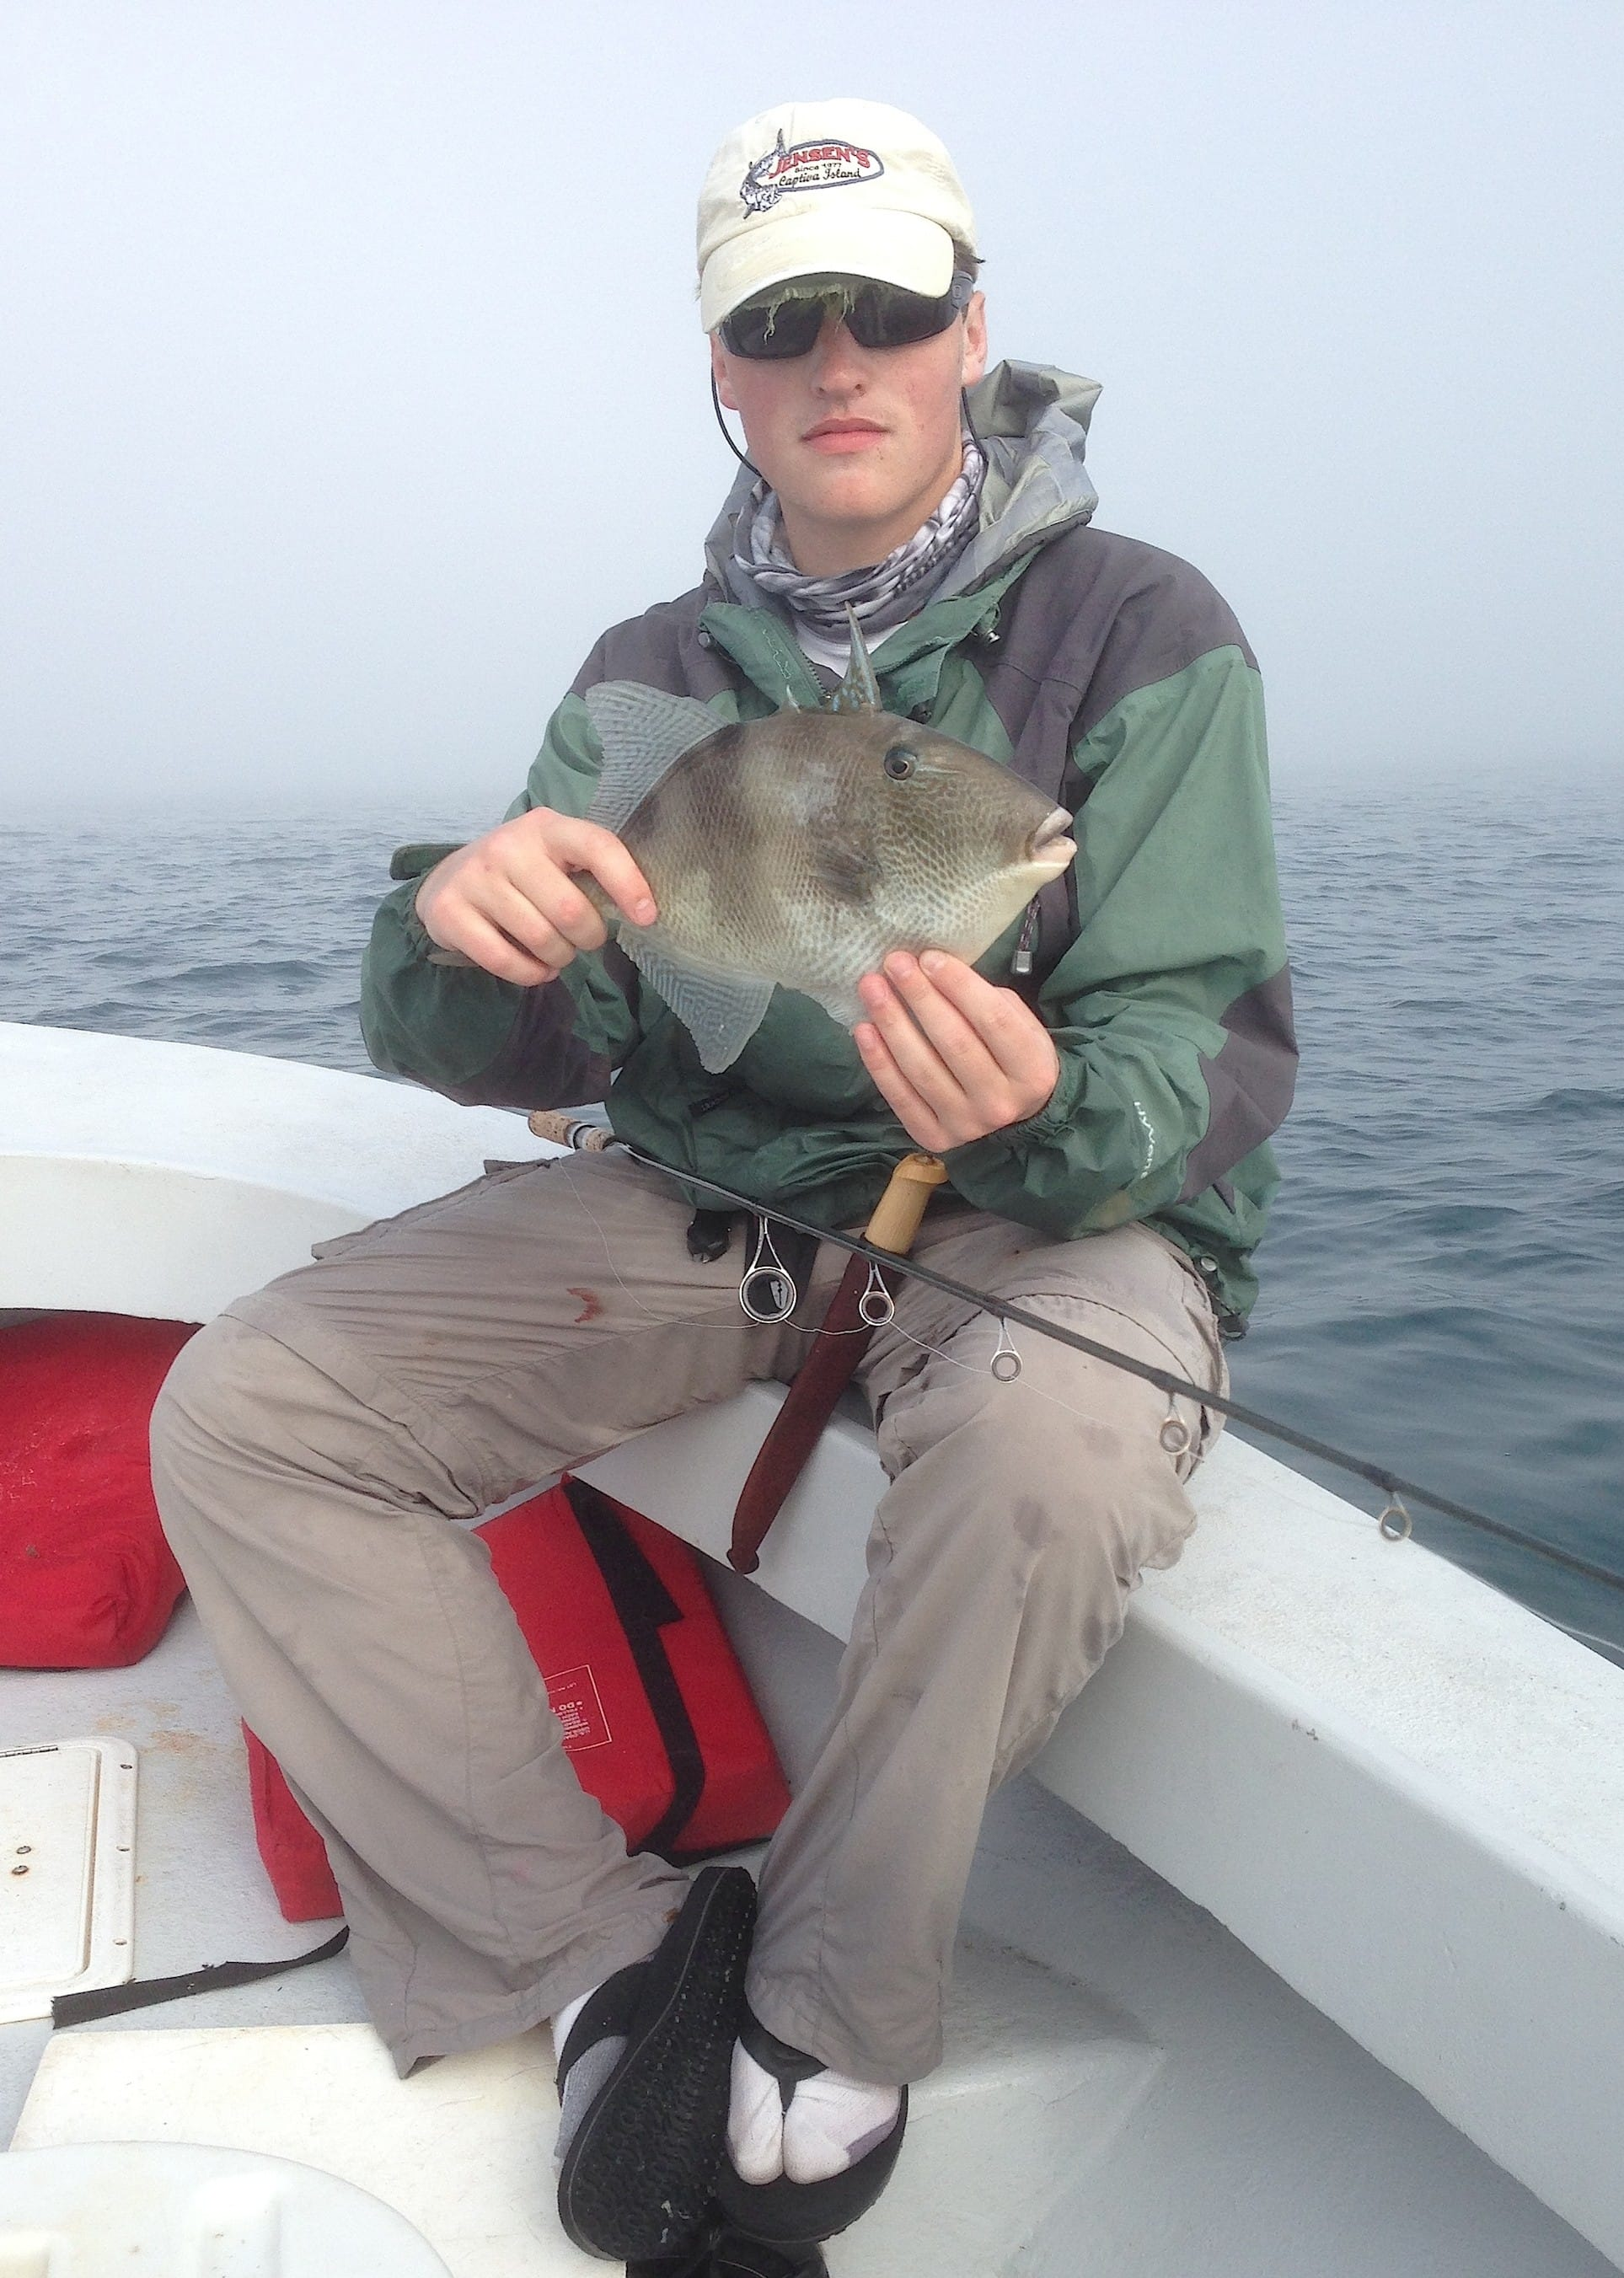 Fort myers fishing report 1 2 15 triggerfish for Charlie s fishing report